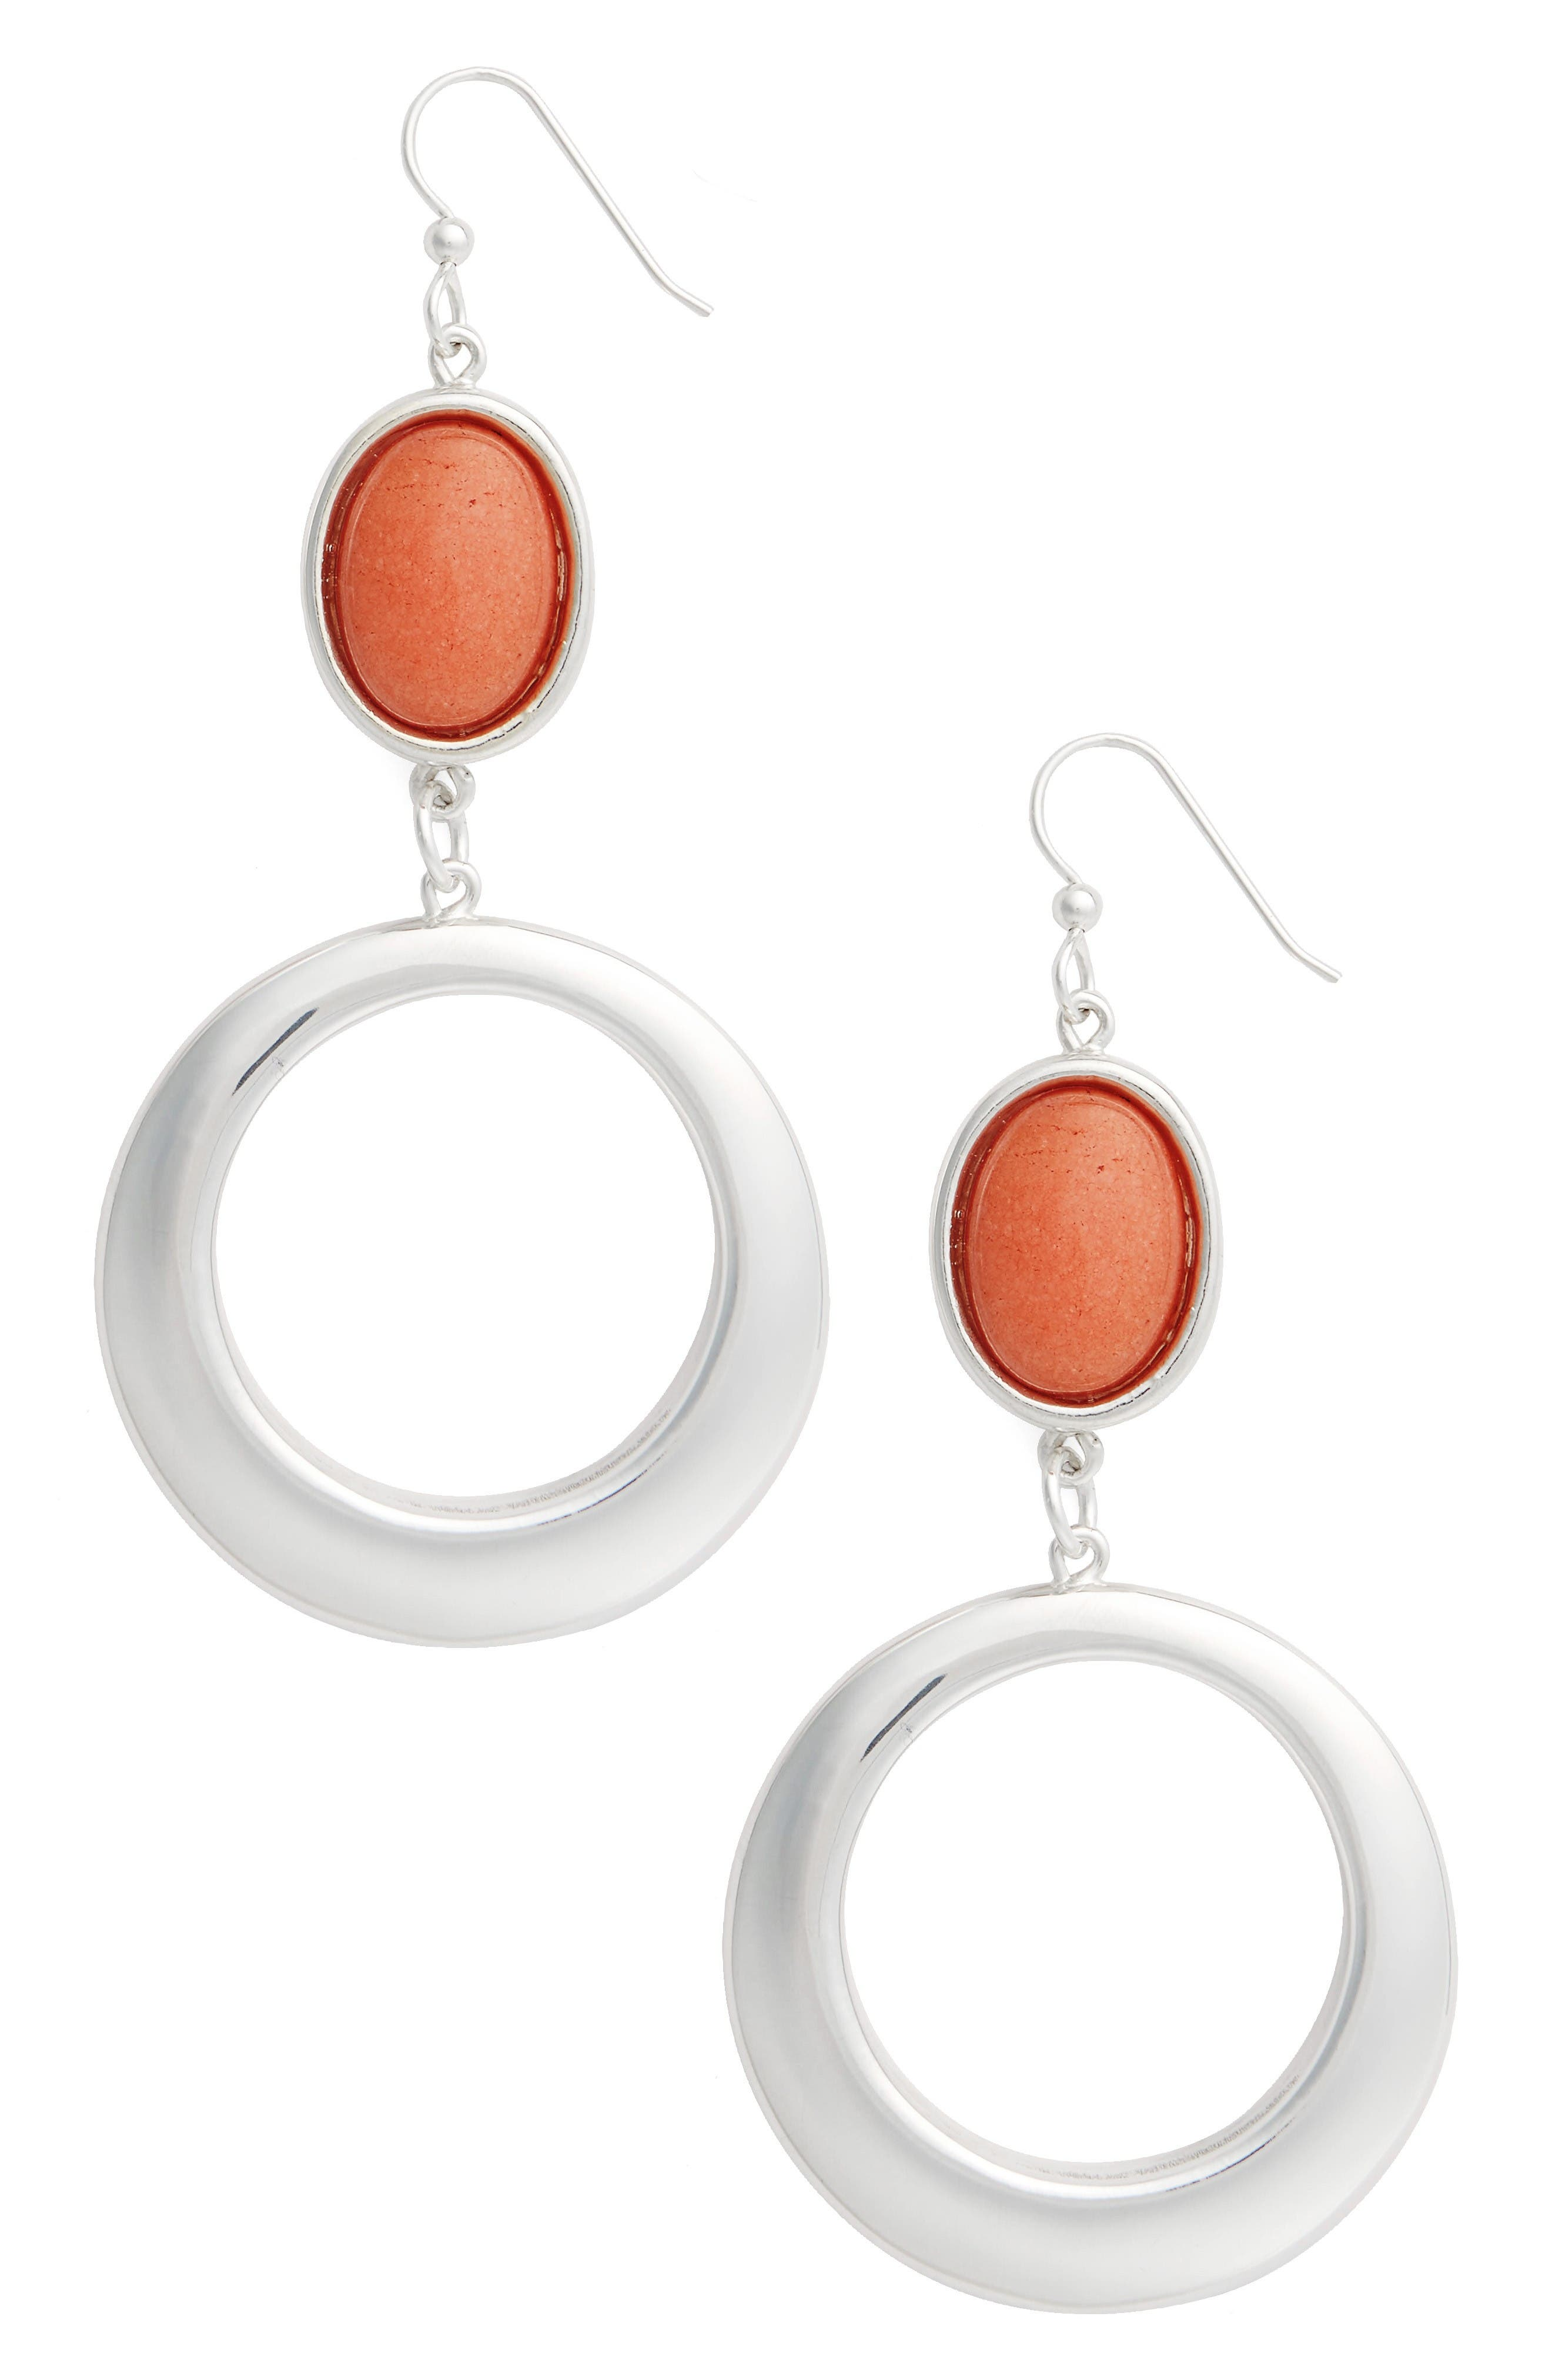 Semiprecious Stone Hoop Drop Earrings,                             Main thumbnail 1, color,                             Orange/ Silver